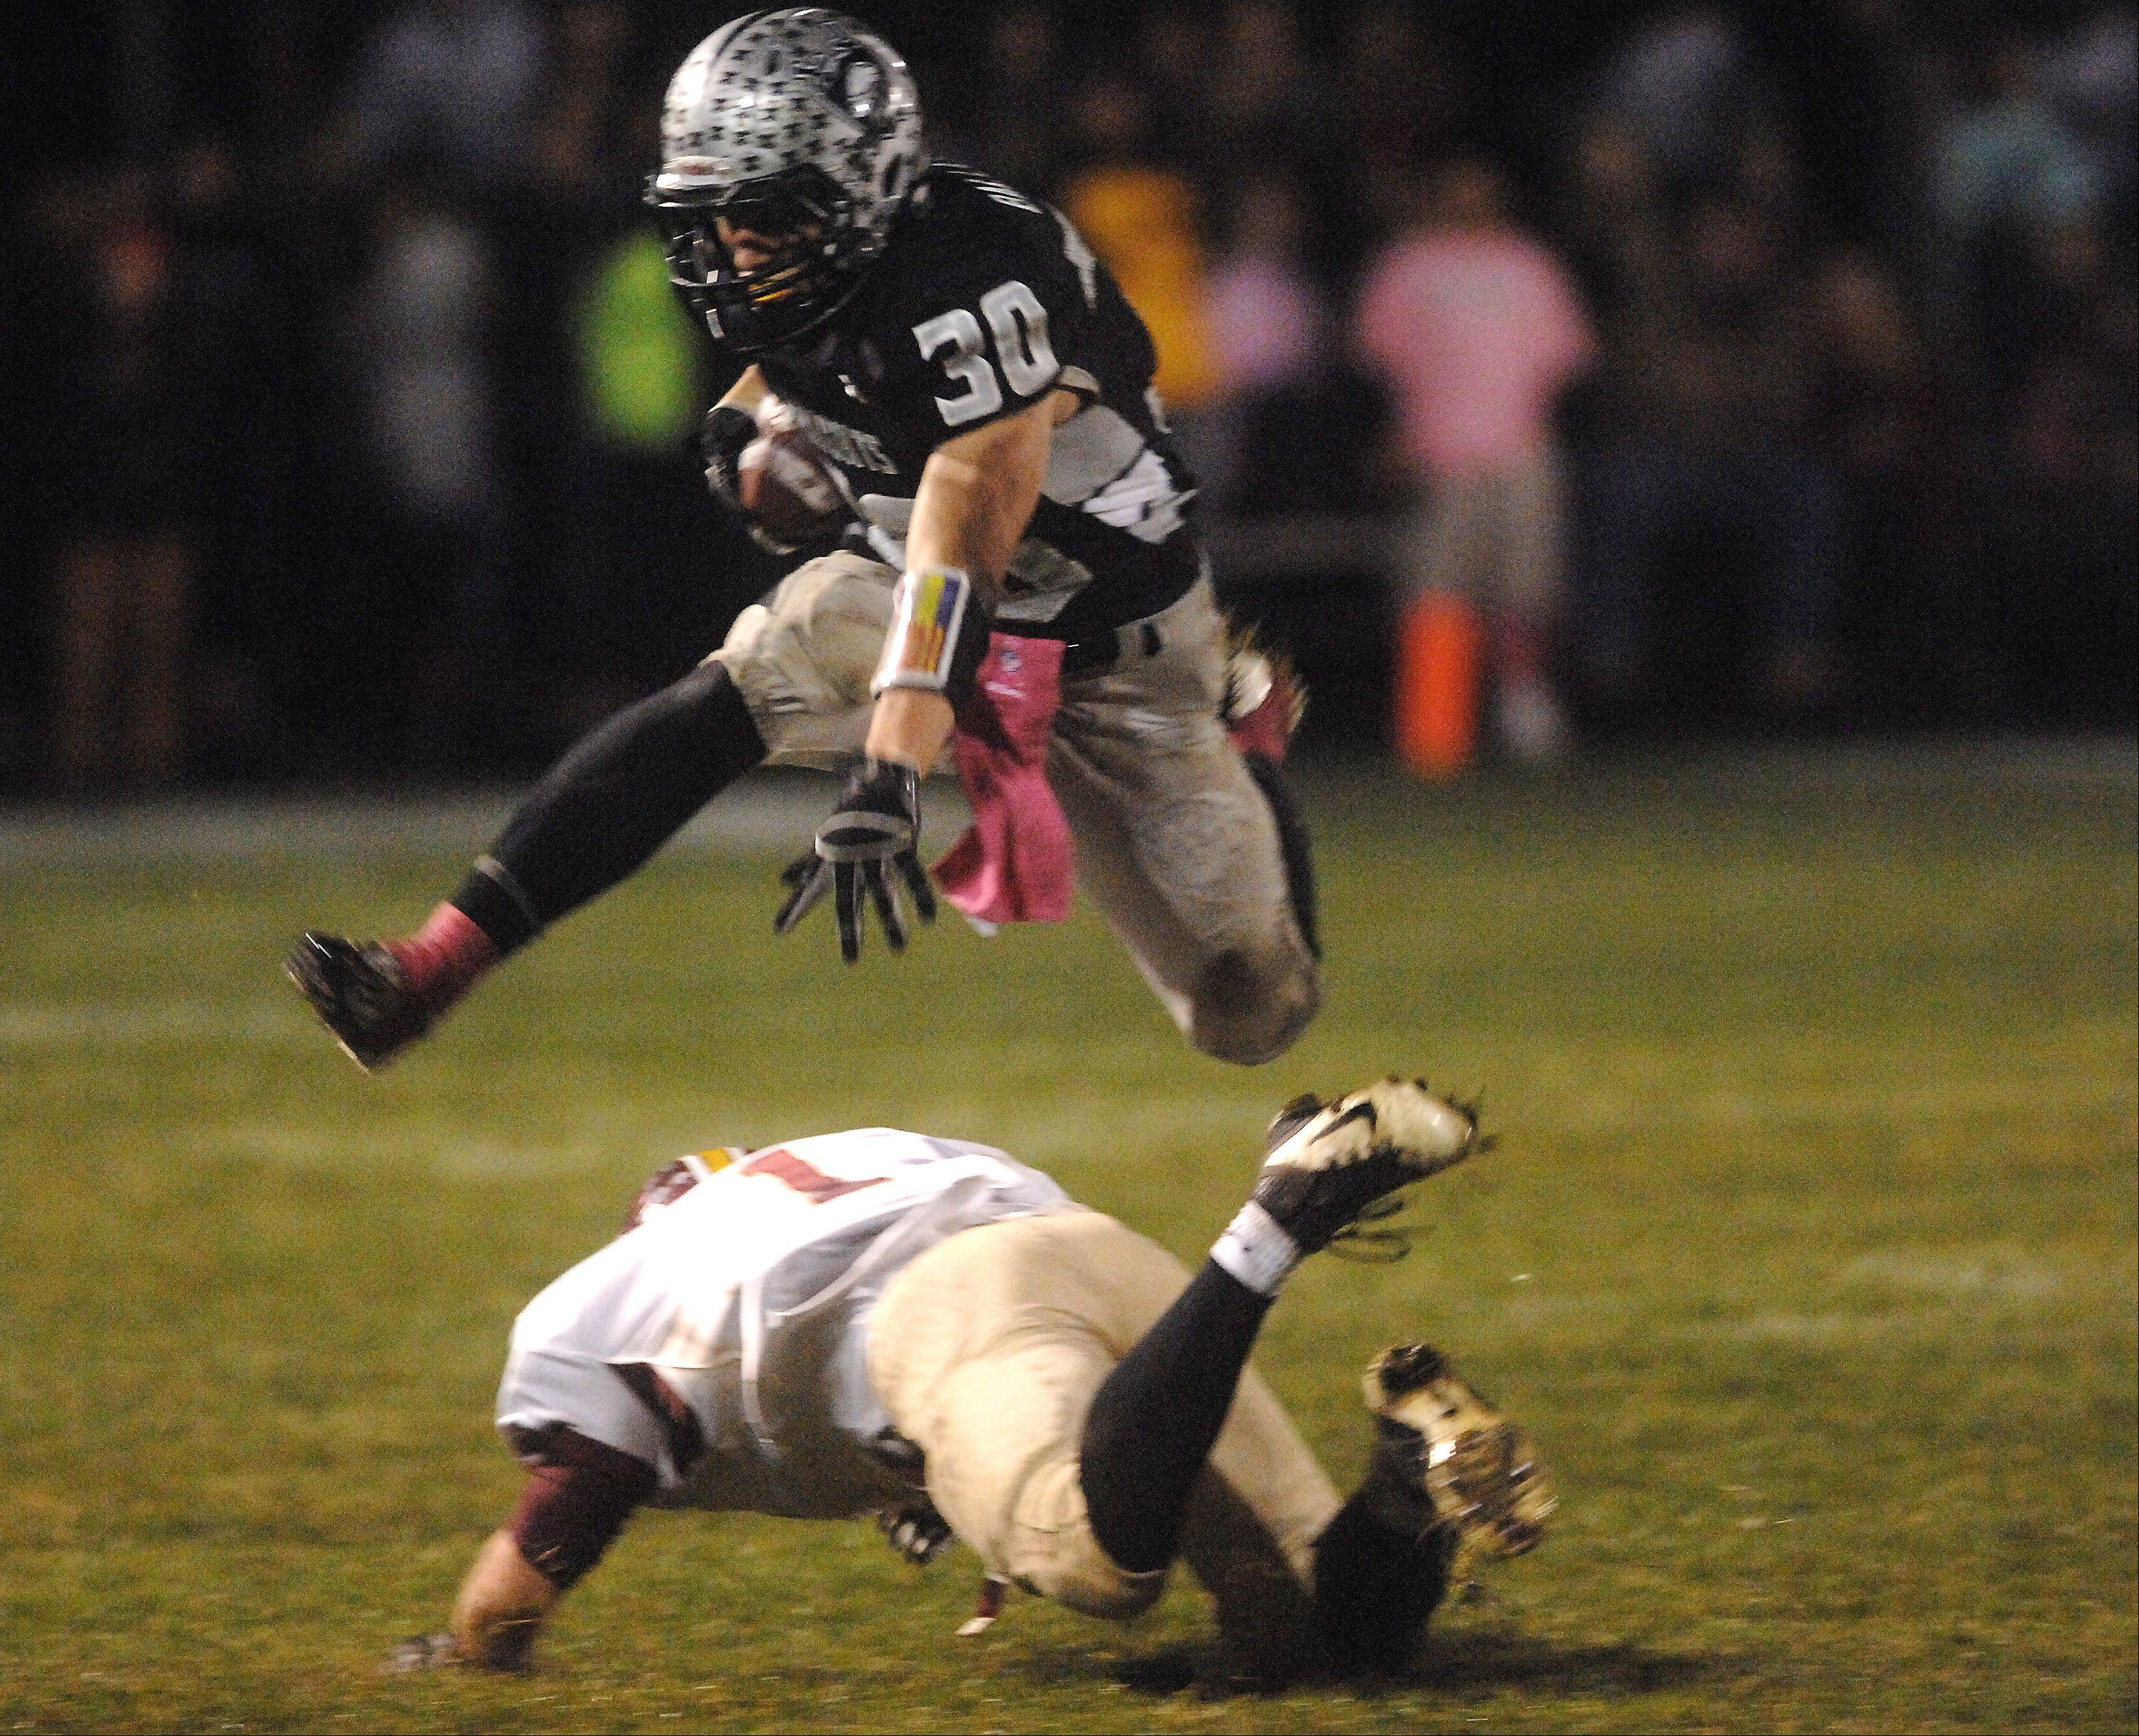 Jesse Balluff, pictured hurdling a would-be Morris tackler during last year�s Northern Illinois Big XII East Conference-clinching 33-30 win, will be one of the key players on a Kaneland team that enters the season on a 28-game regular season winning streak.